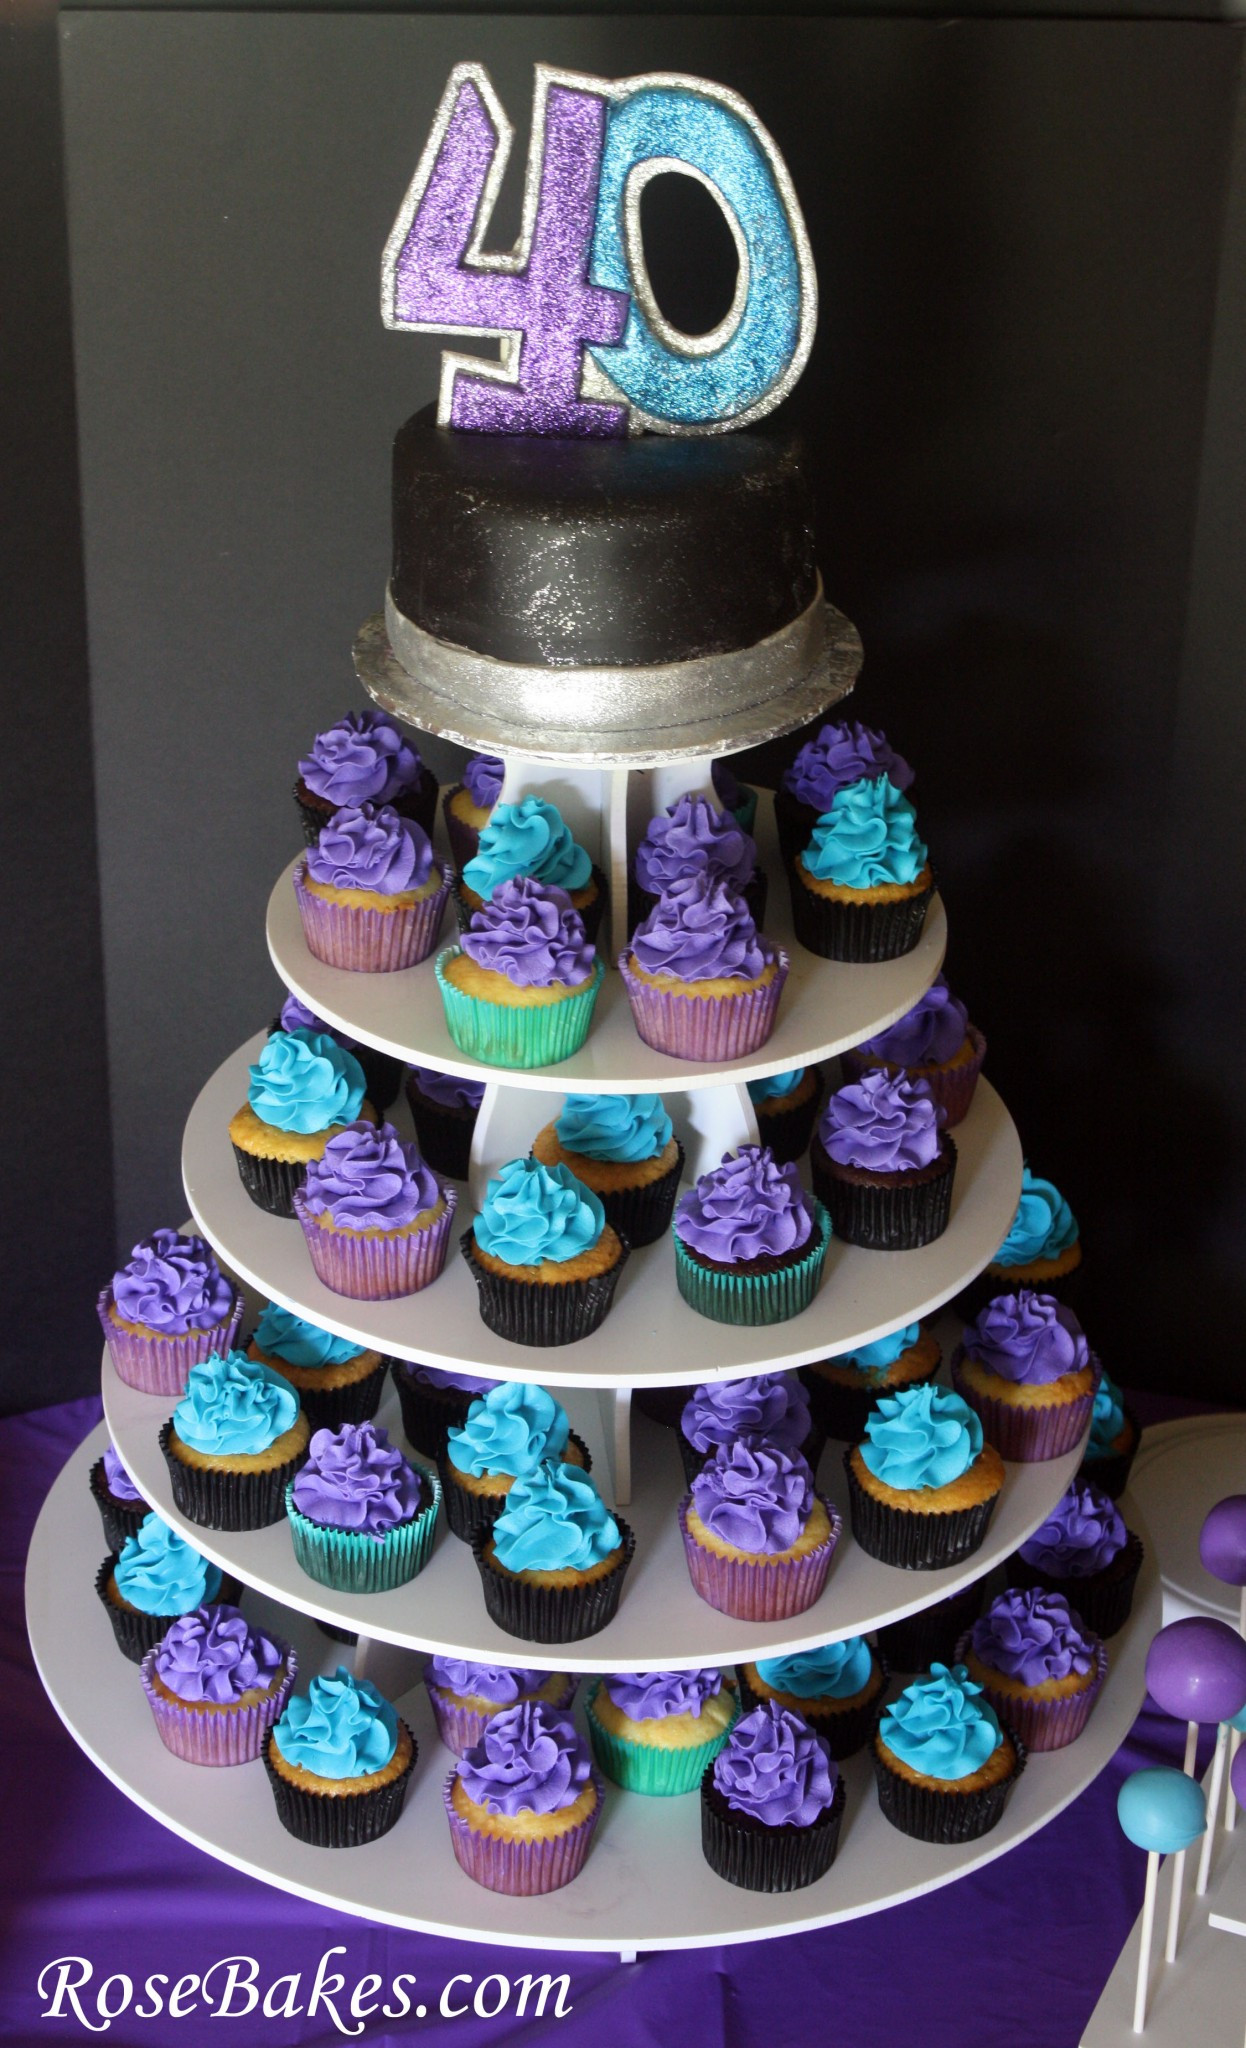 Best ideas about 40th Birthday Cake Ideas . Save or Pin 40th Birthday Cake Cupcakes & Cake Pops A Party for my Now.